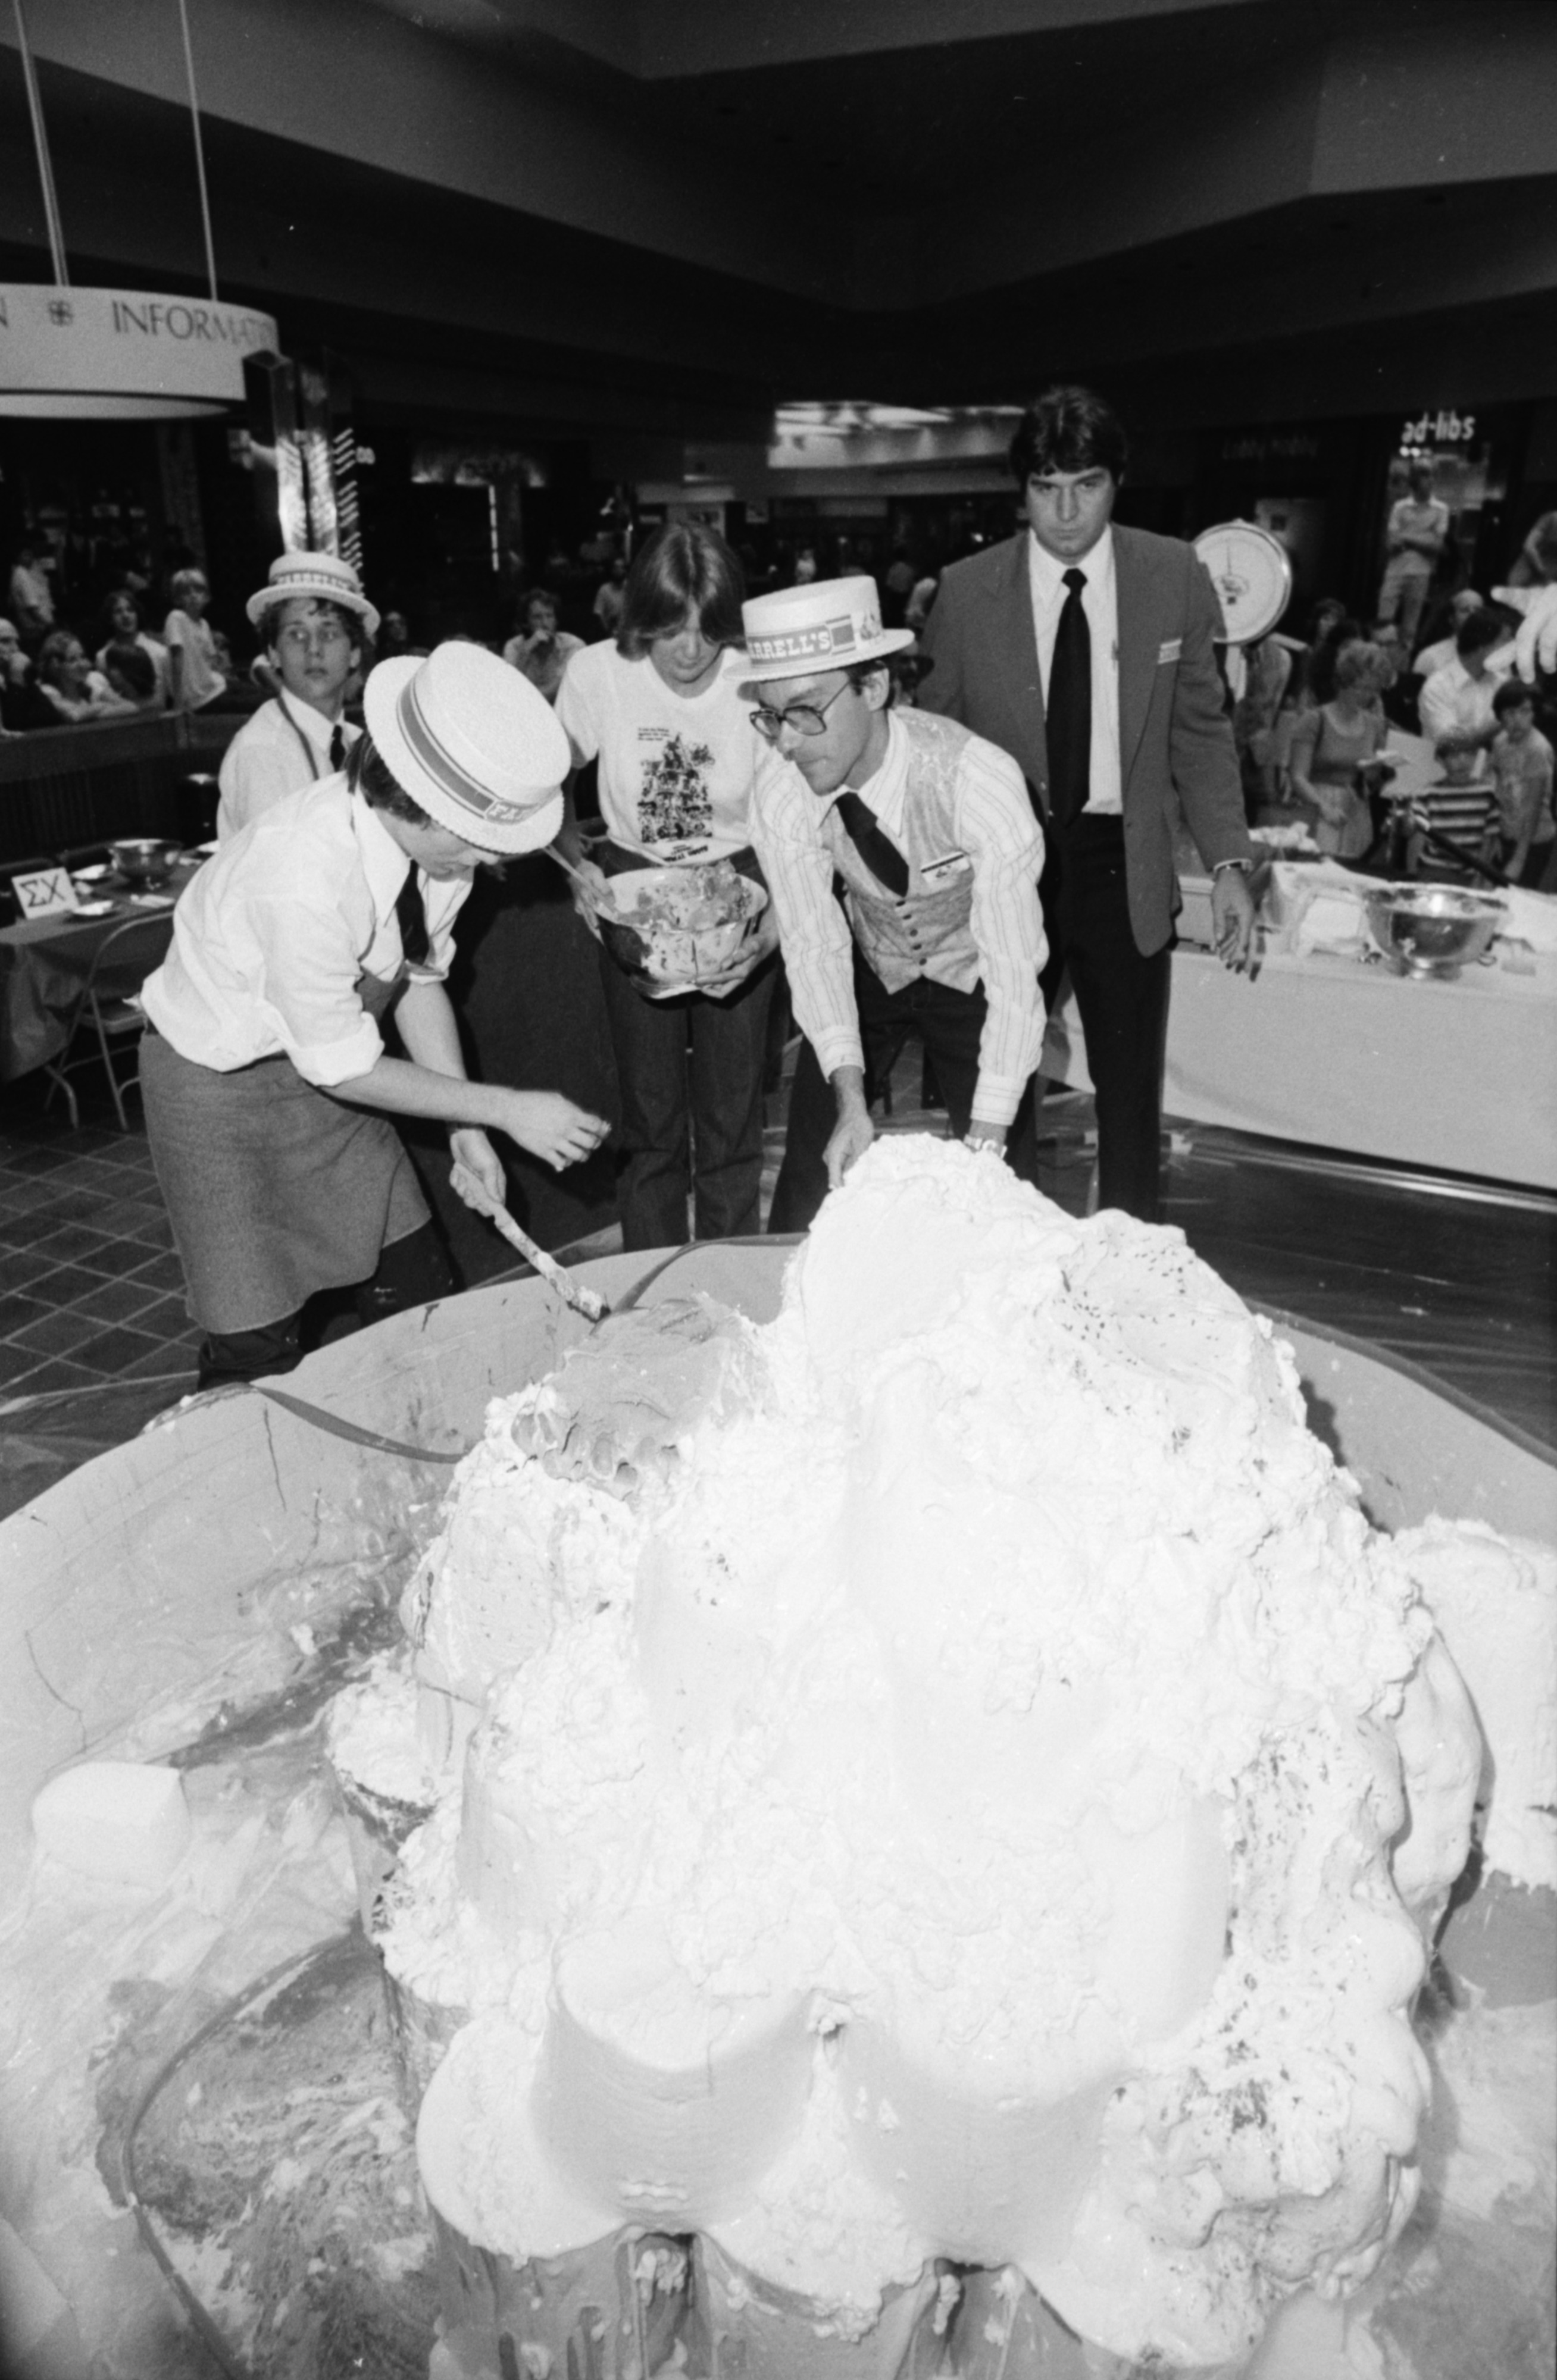 Ice Cream Eating Contest at Briarwood Mall, September 1978 image